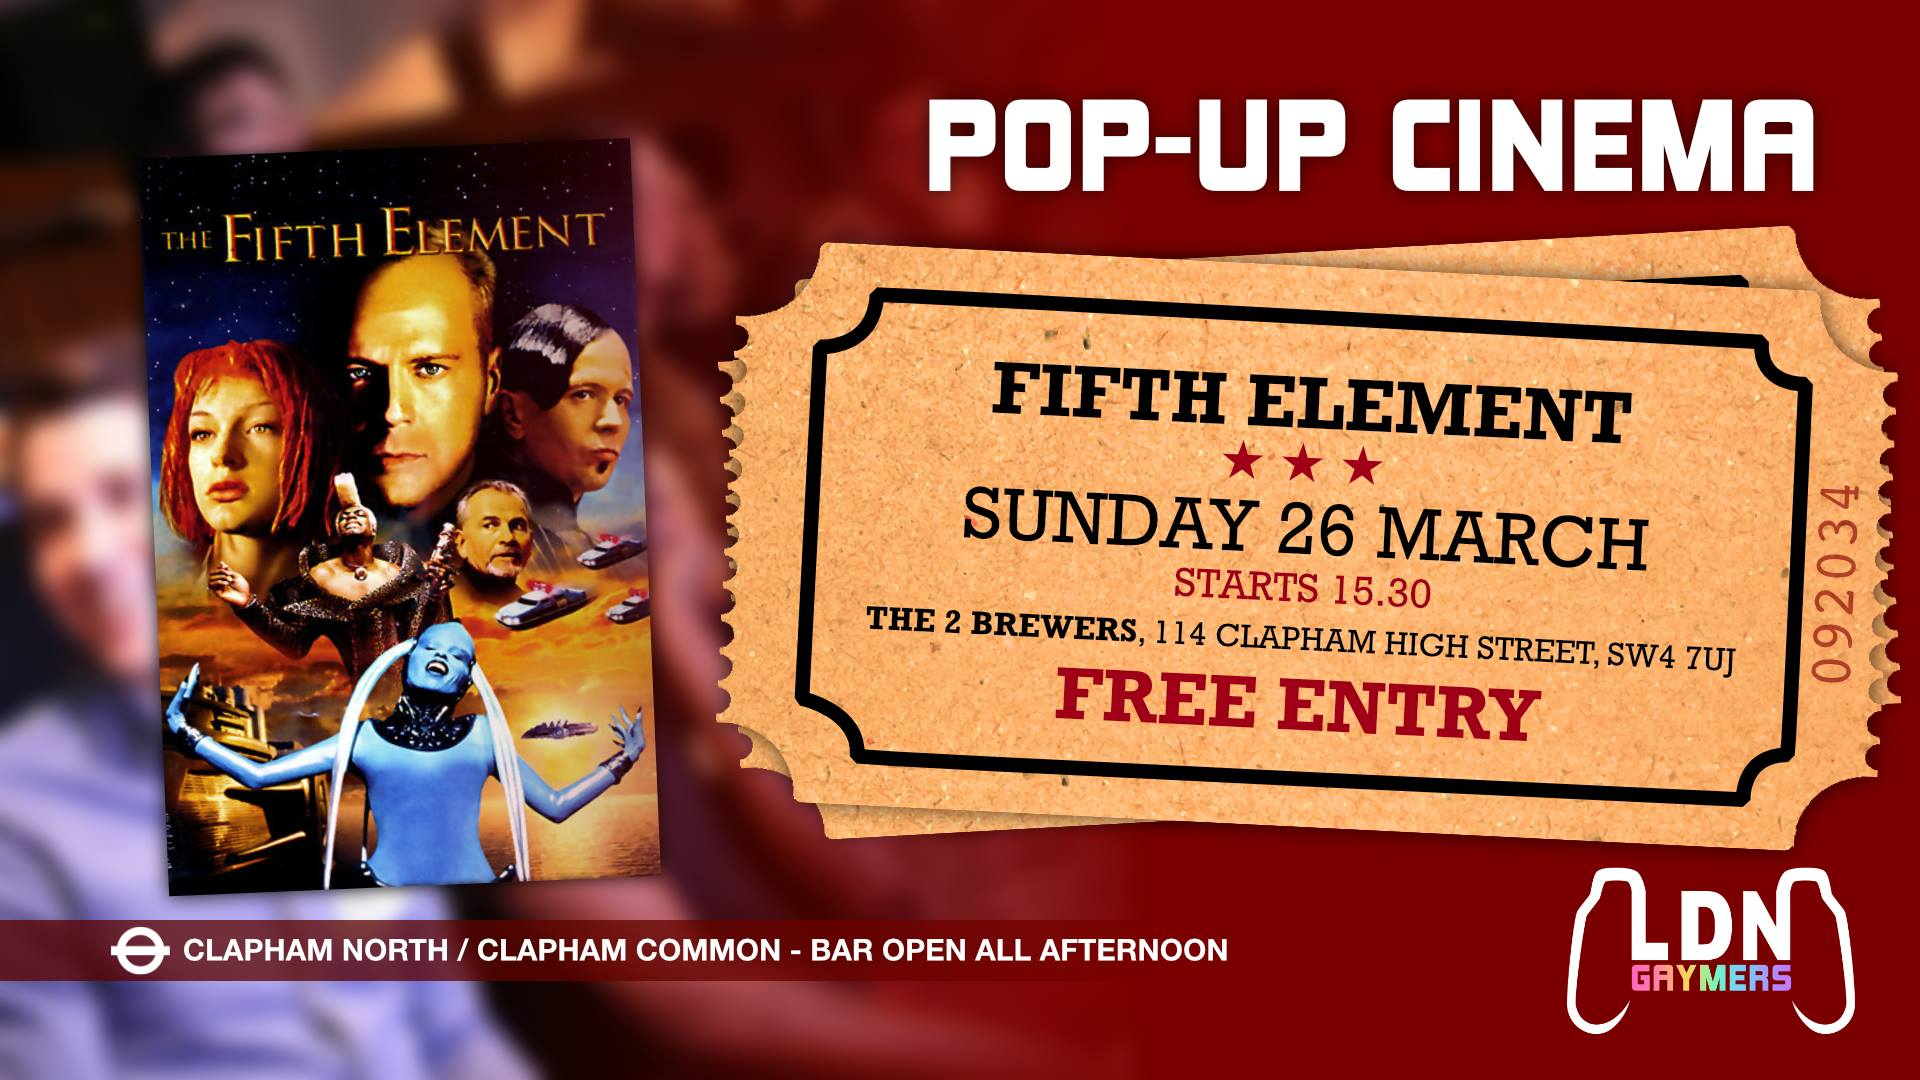 Pop-up Cinema: The Fifth Element